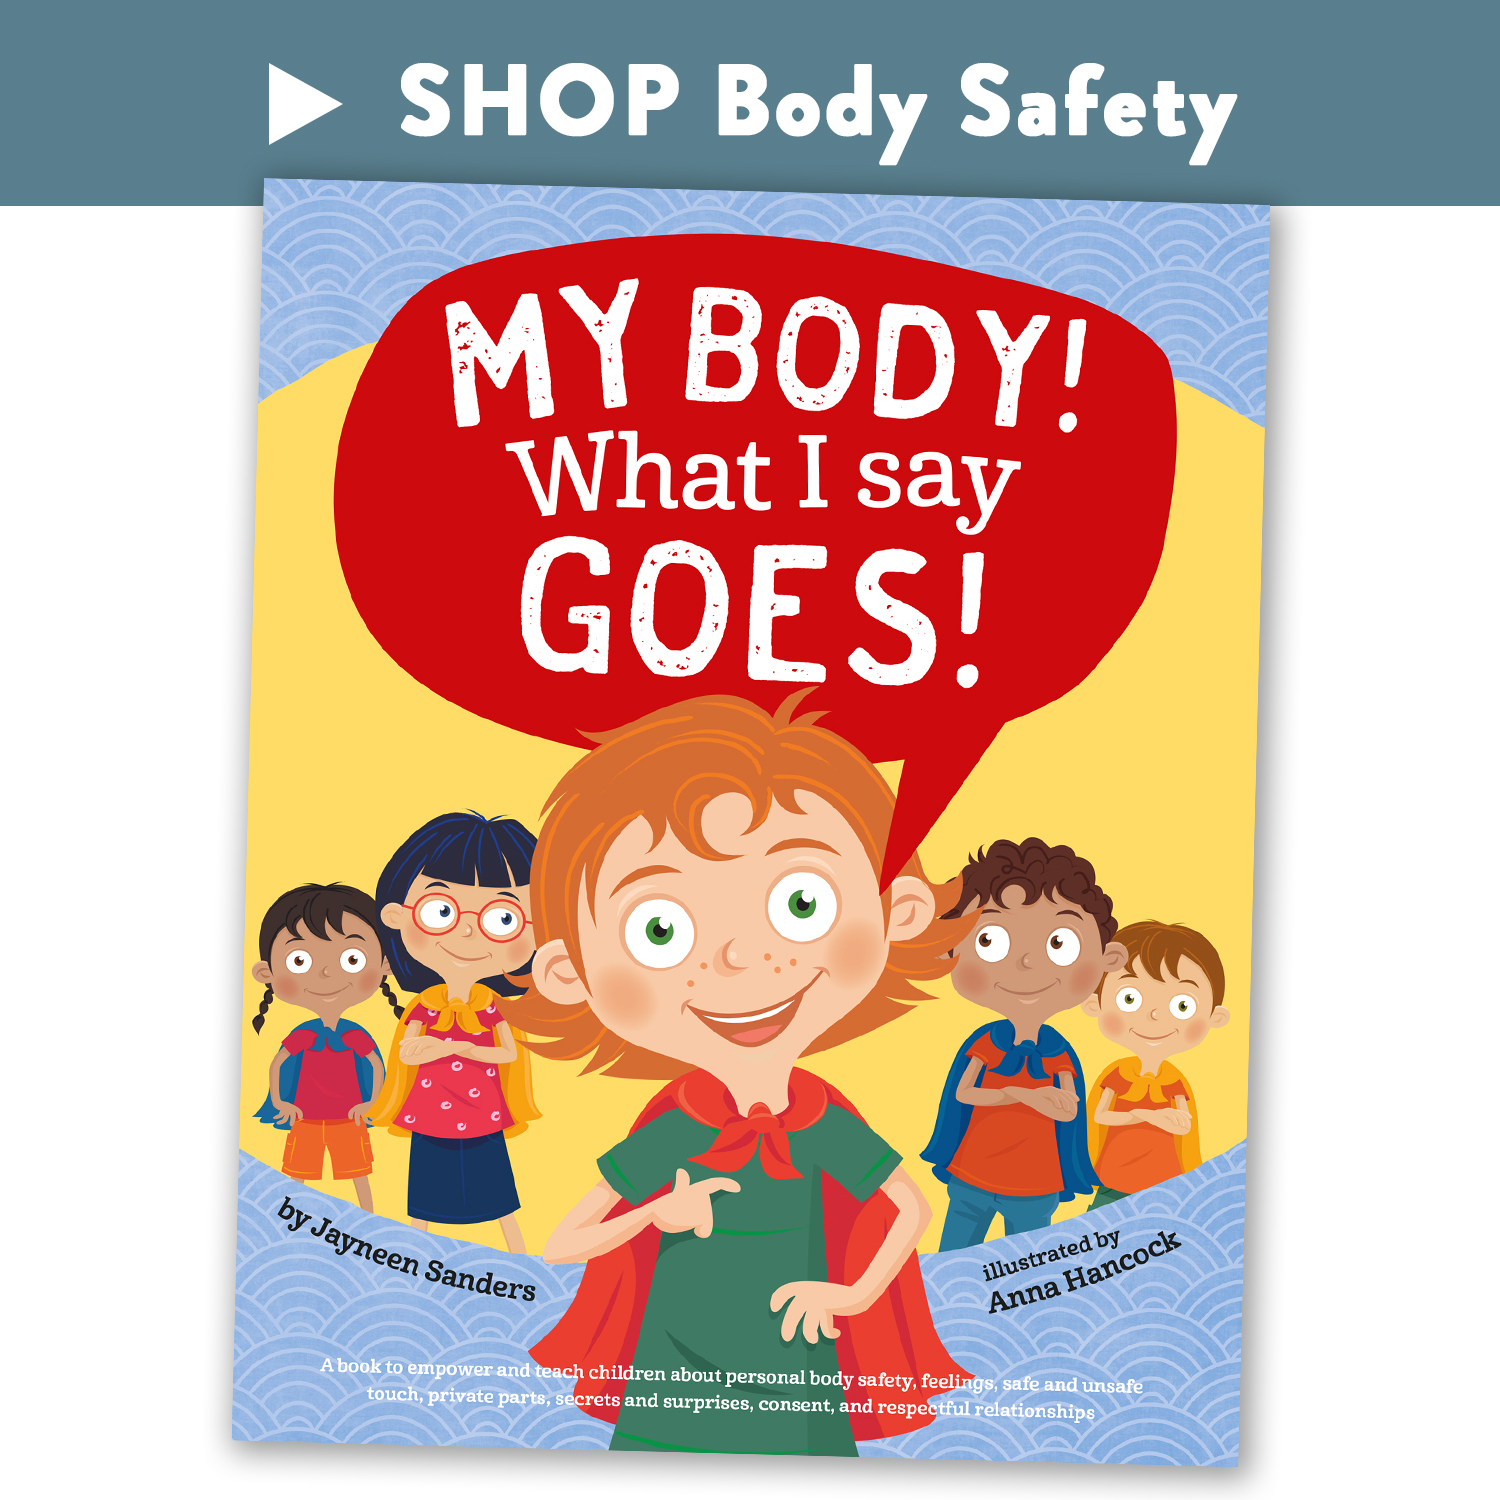 E2E_shop_BodySafety_5-MB.jpg